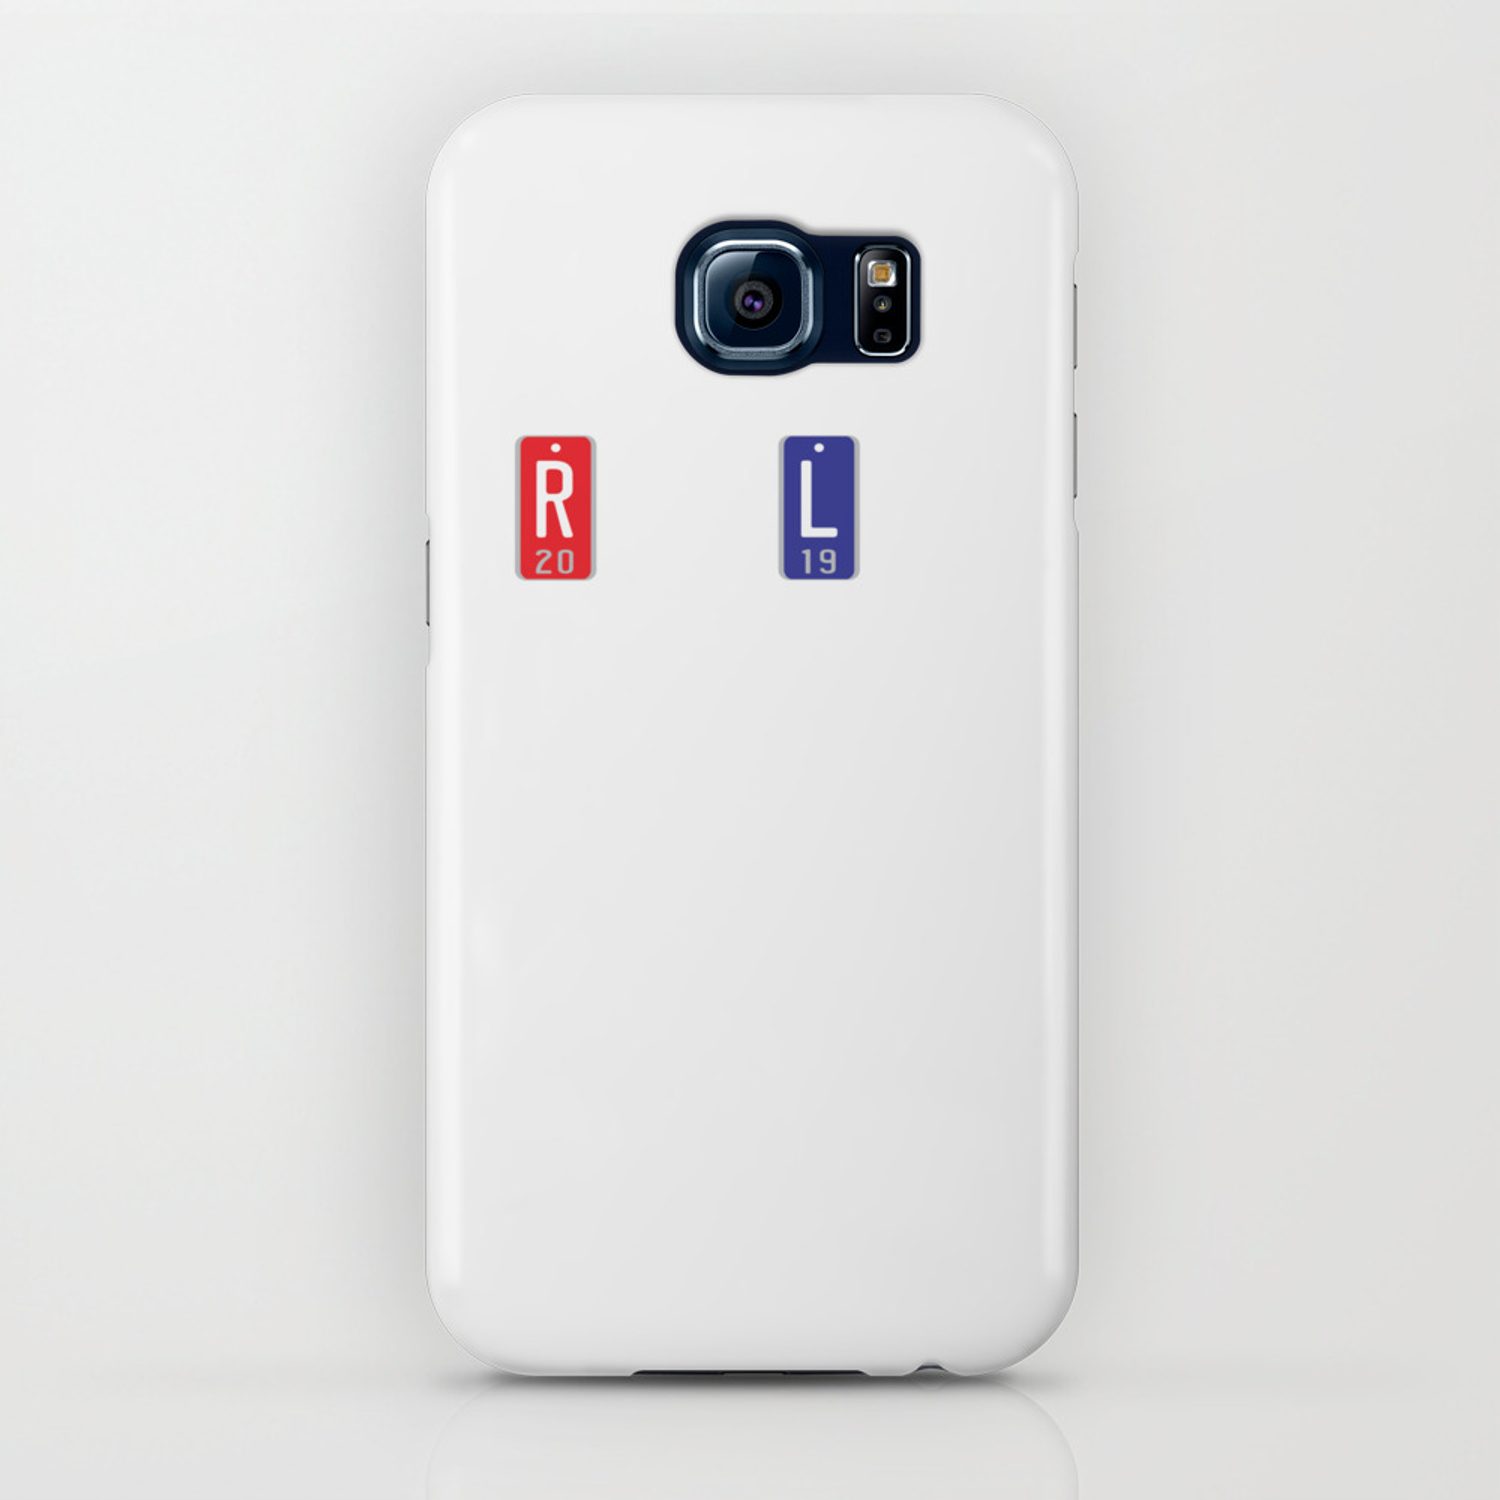 Radiology X-Ray Marker Class Of 2019 Graduation iPhone Case